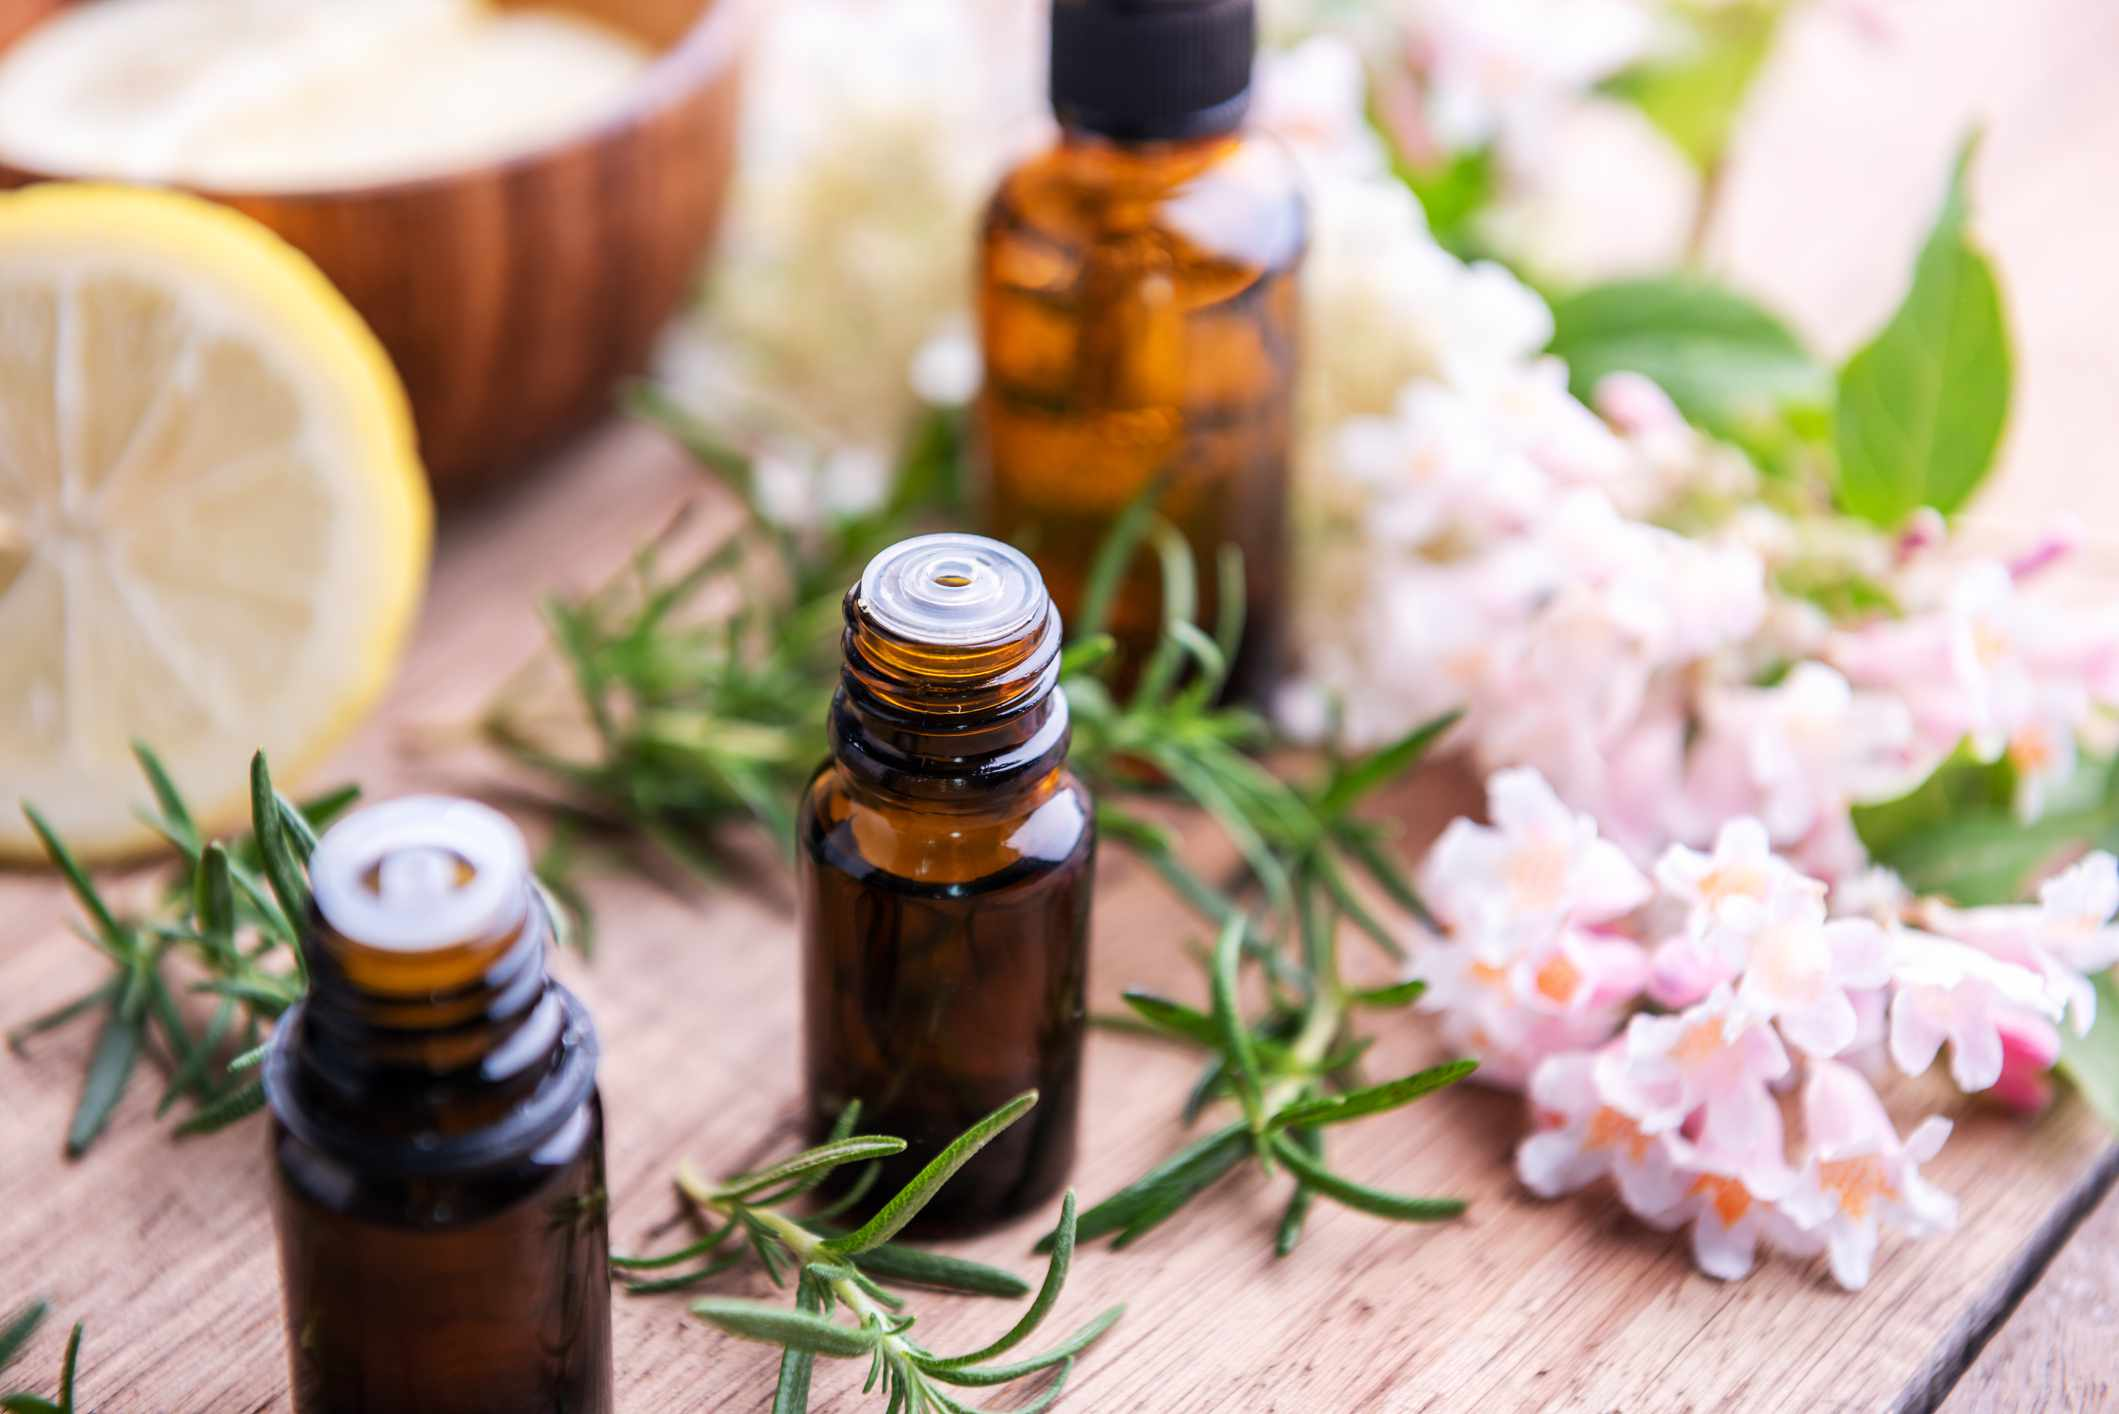 Three bottles of rosemary essential oil sit surrounded by sliced lemon, small pink flowers, rosemary stalks, and a wooden bowl